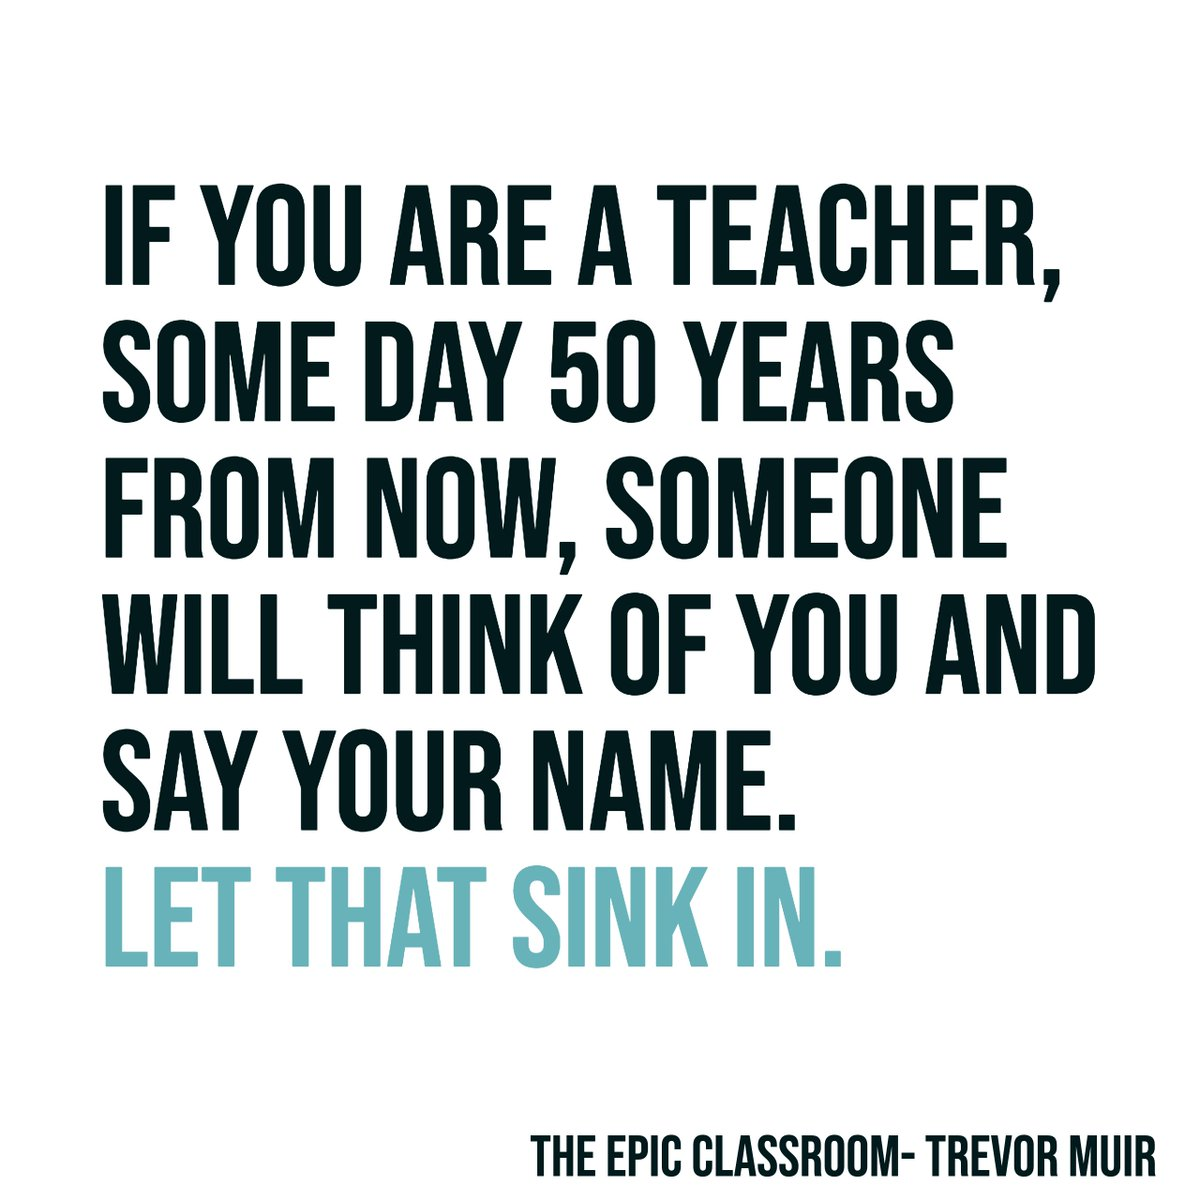 A teacher's impact is anything but temporary.